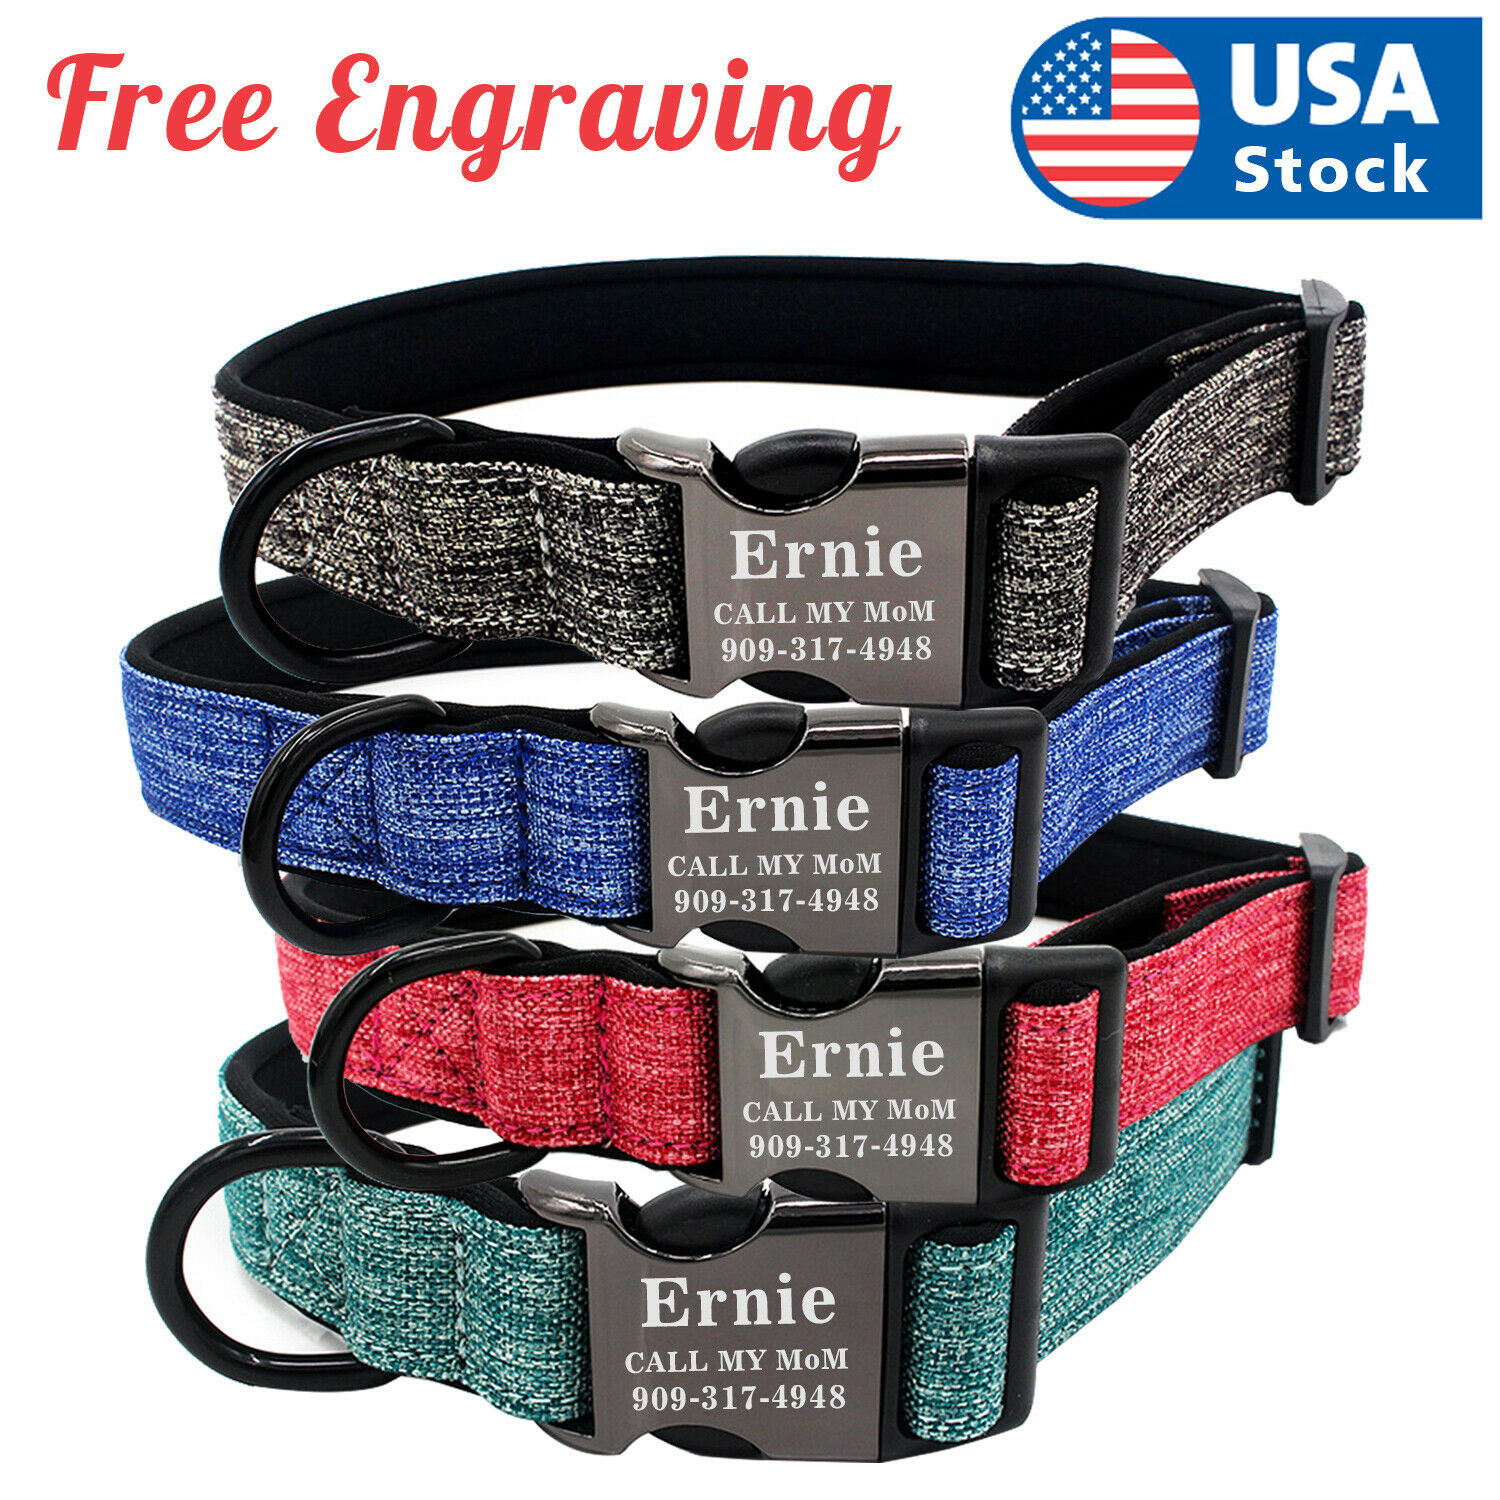 Personalized Dog Collar Canvas Buckle Engraved ID Name Custom S/M/L Collars